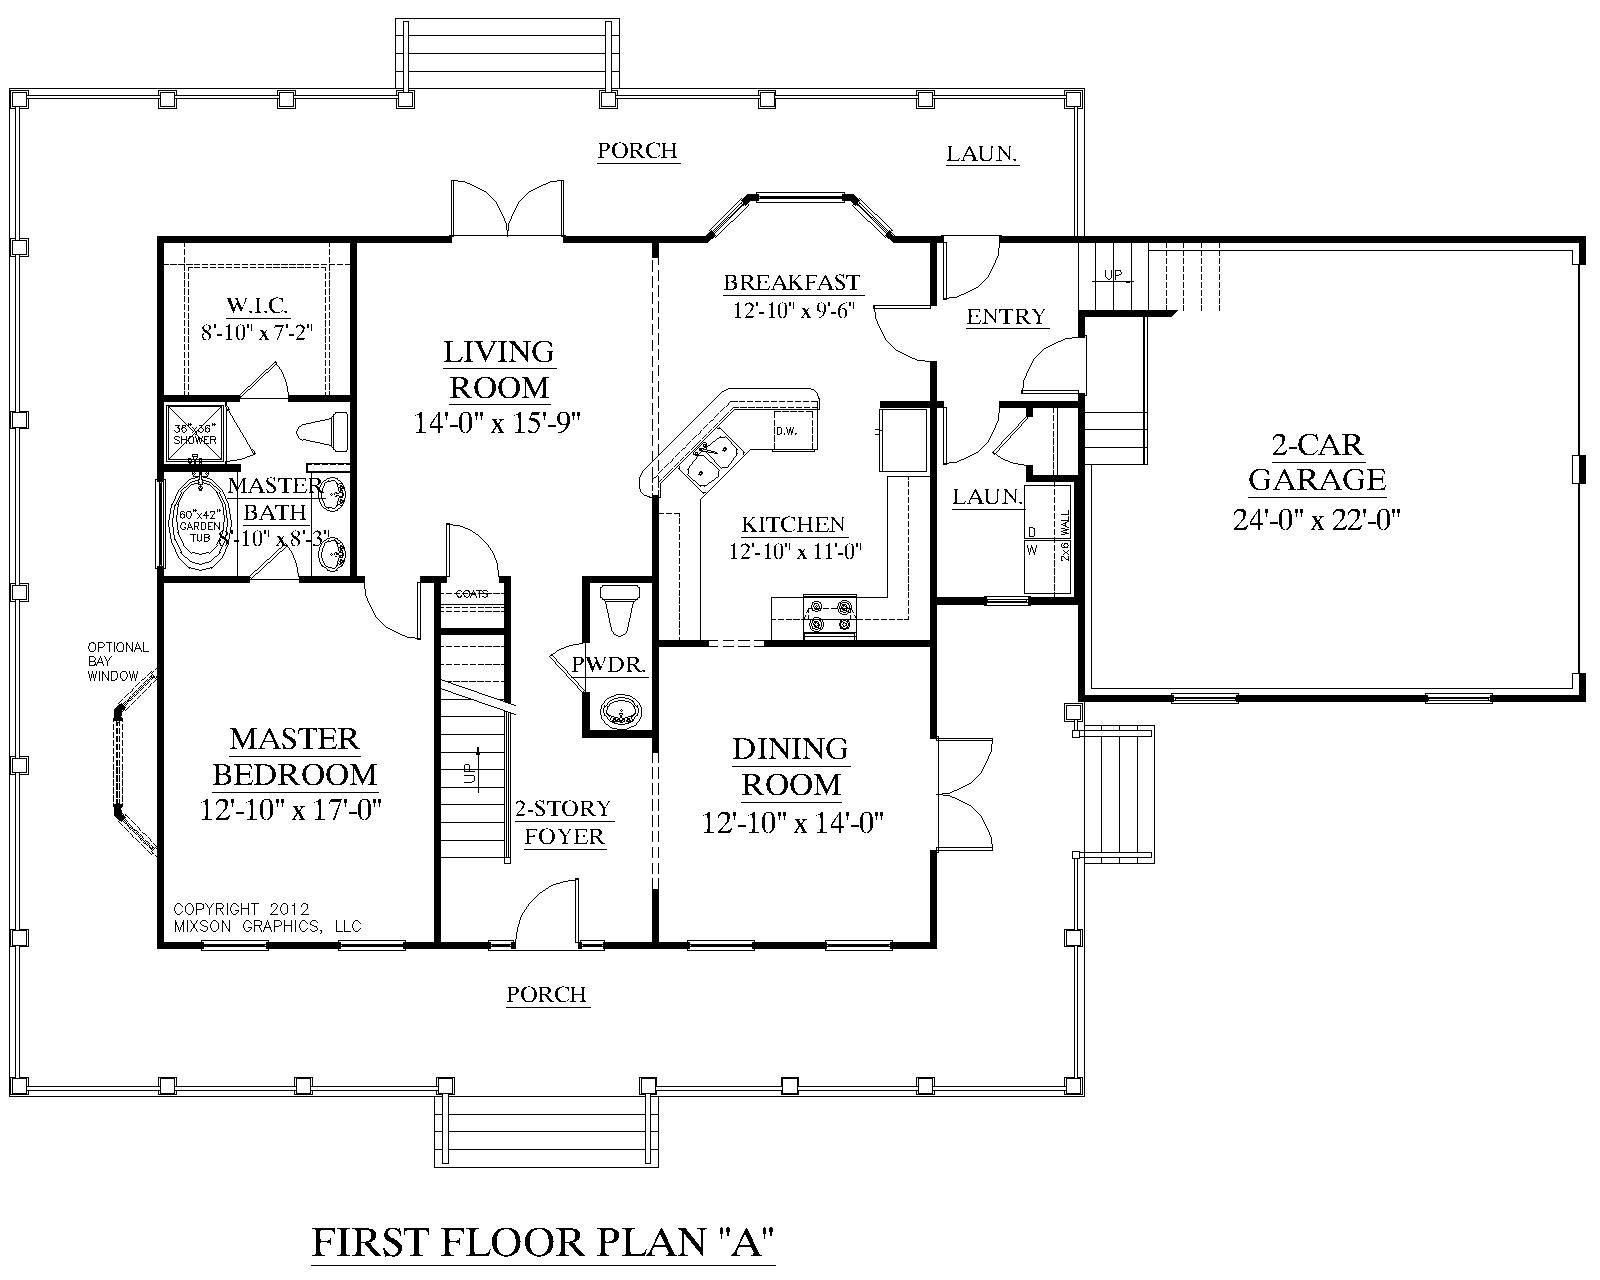 House plan 2341 a montgomery a first floor plan for Small house plans with master bedroom on first floor